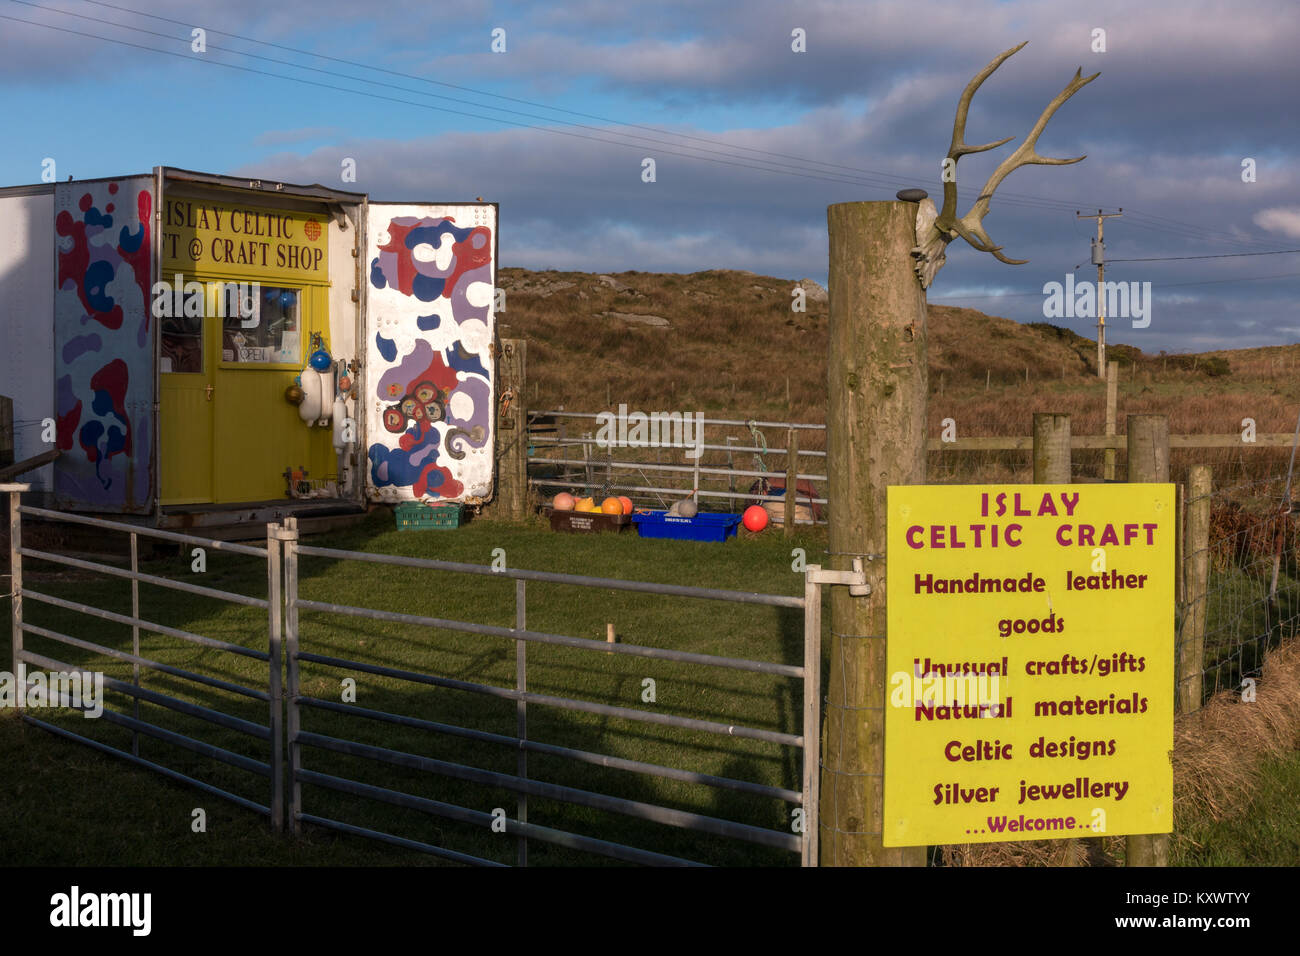 Boutique d'artisanat celtique original avec des marchandises sur Isle of Islay Photo Stock